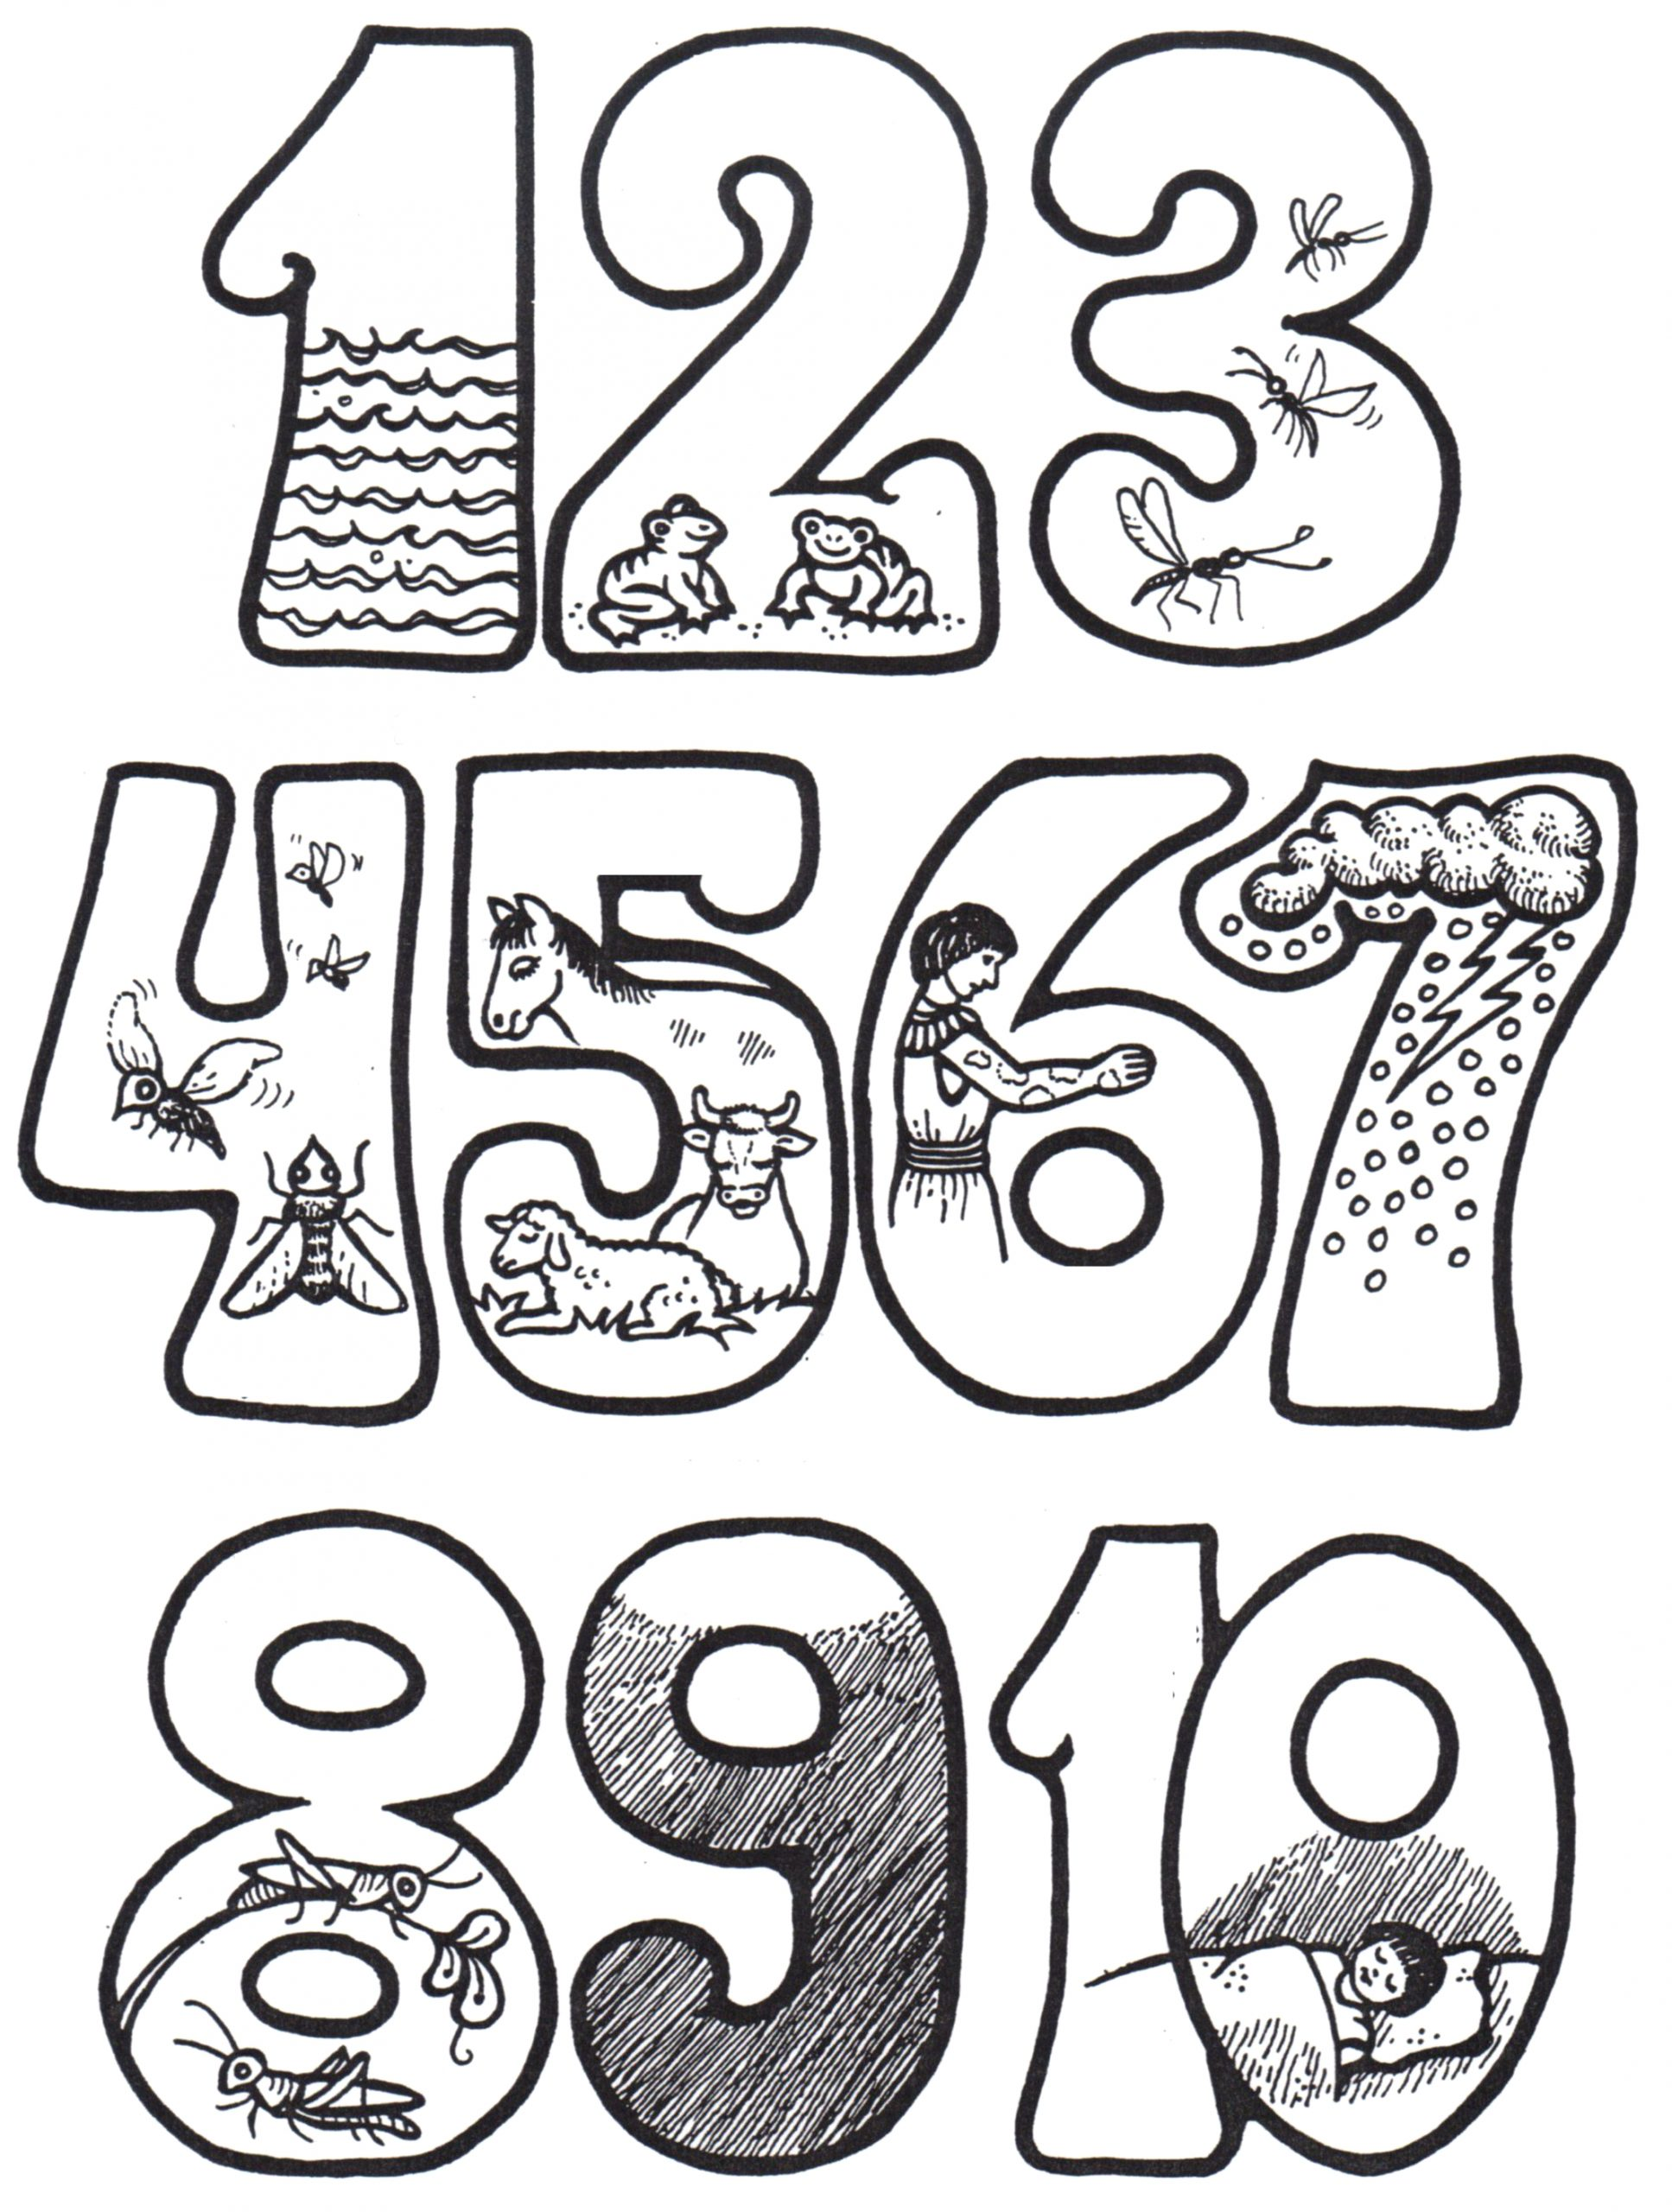 Moses and the 10 Plagues Coloring Pages Moses and the 10 Plagues Coloring Pages – Learning How to Read